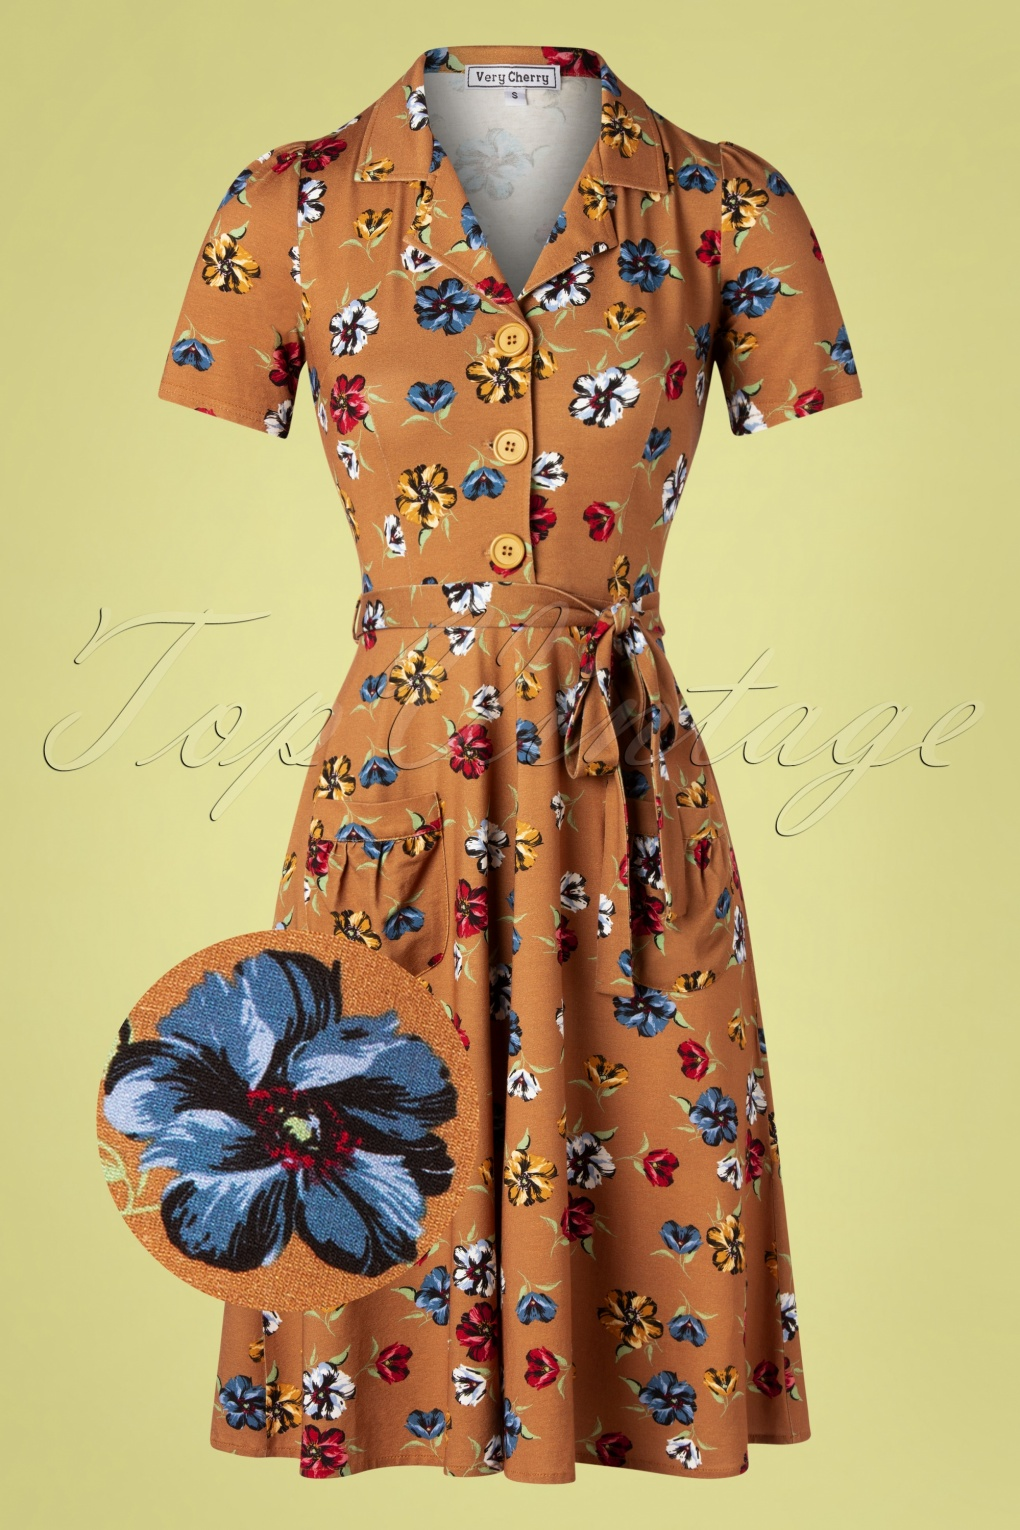 1940s Dresses | 40s Dress, Swing Dress 40s Corniglia Flowers Tricot Revers Dress in Camel £119.68 AT vintagedancer.com